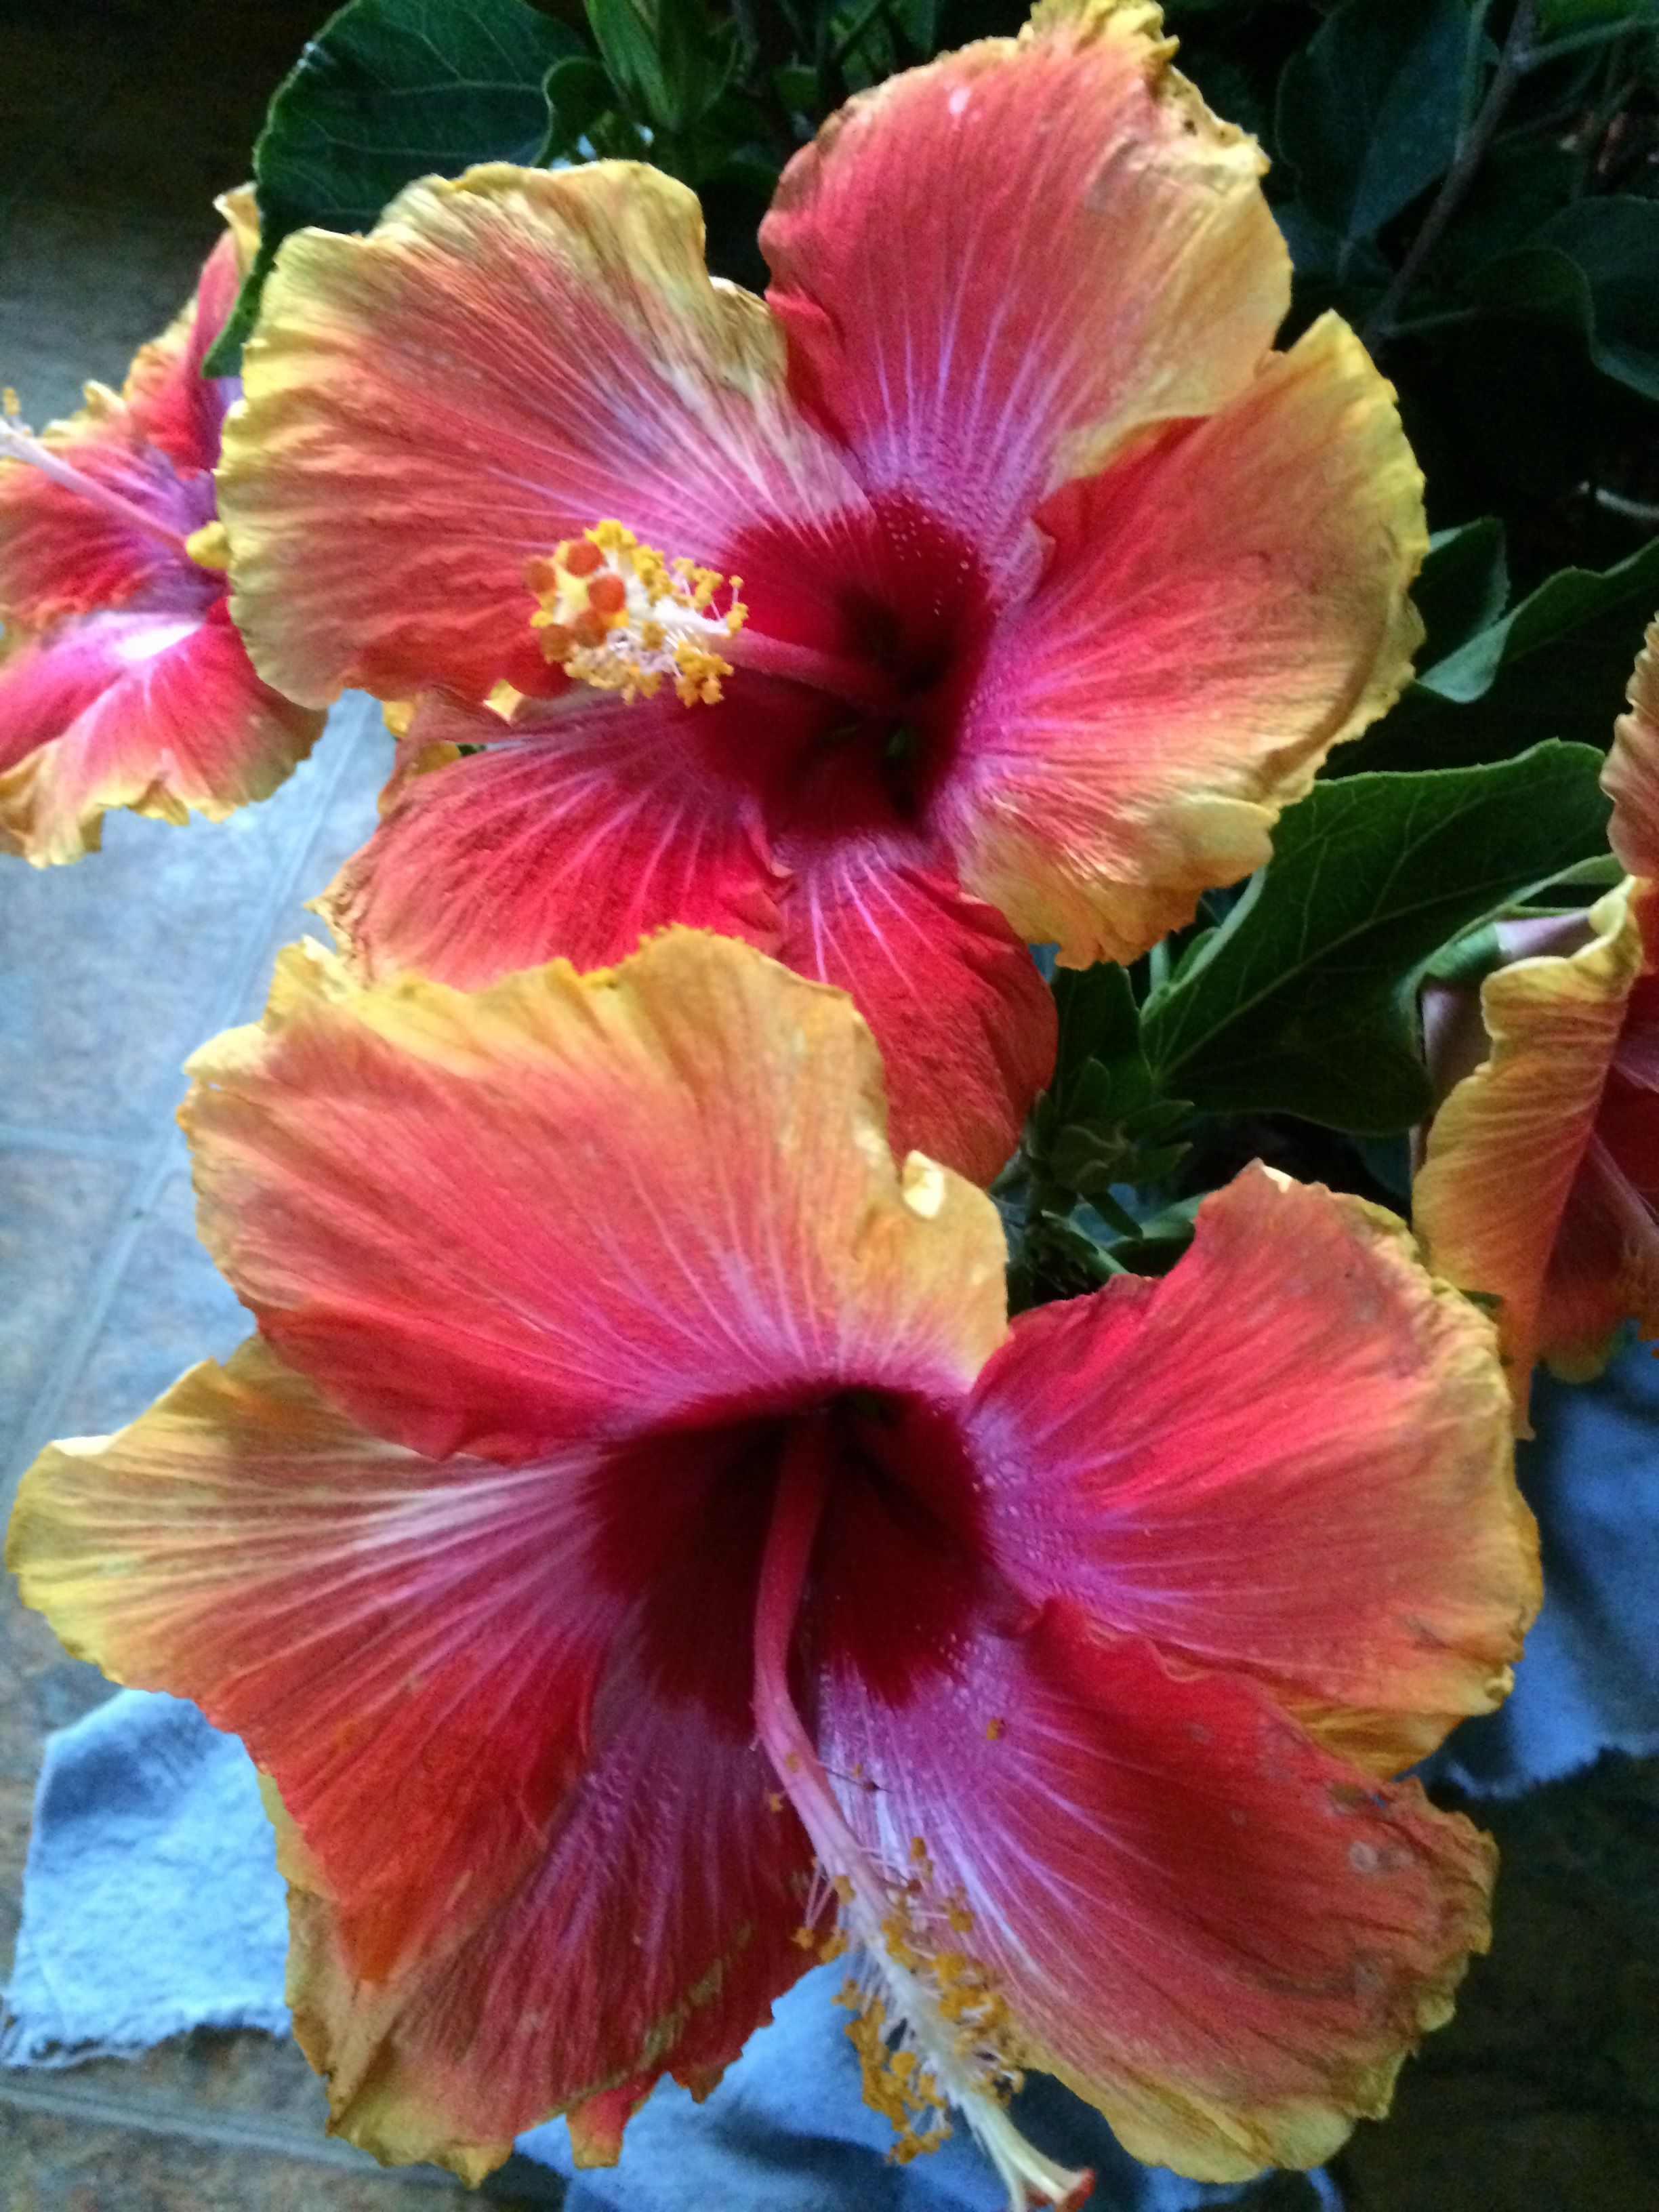 Pin By Lynne On Hibiscus Pinterest Hibiscus Exotic Flowers And